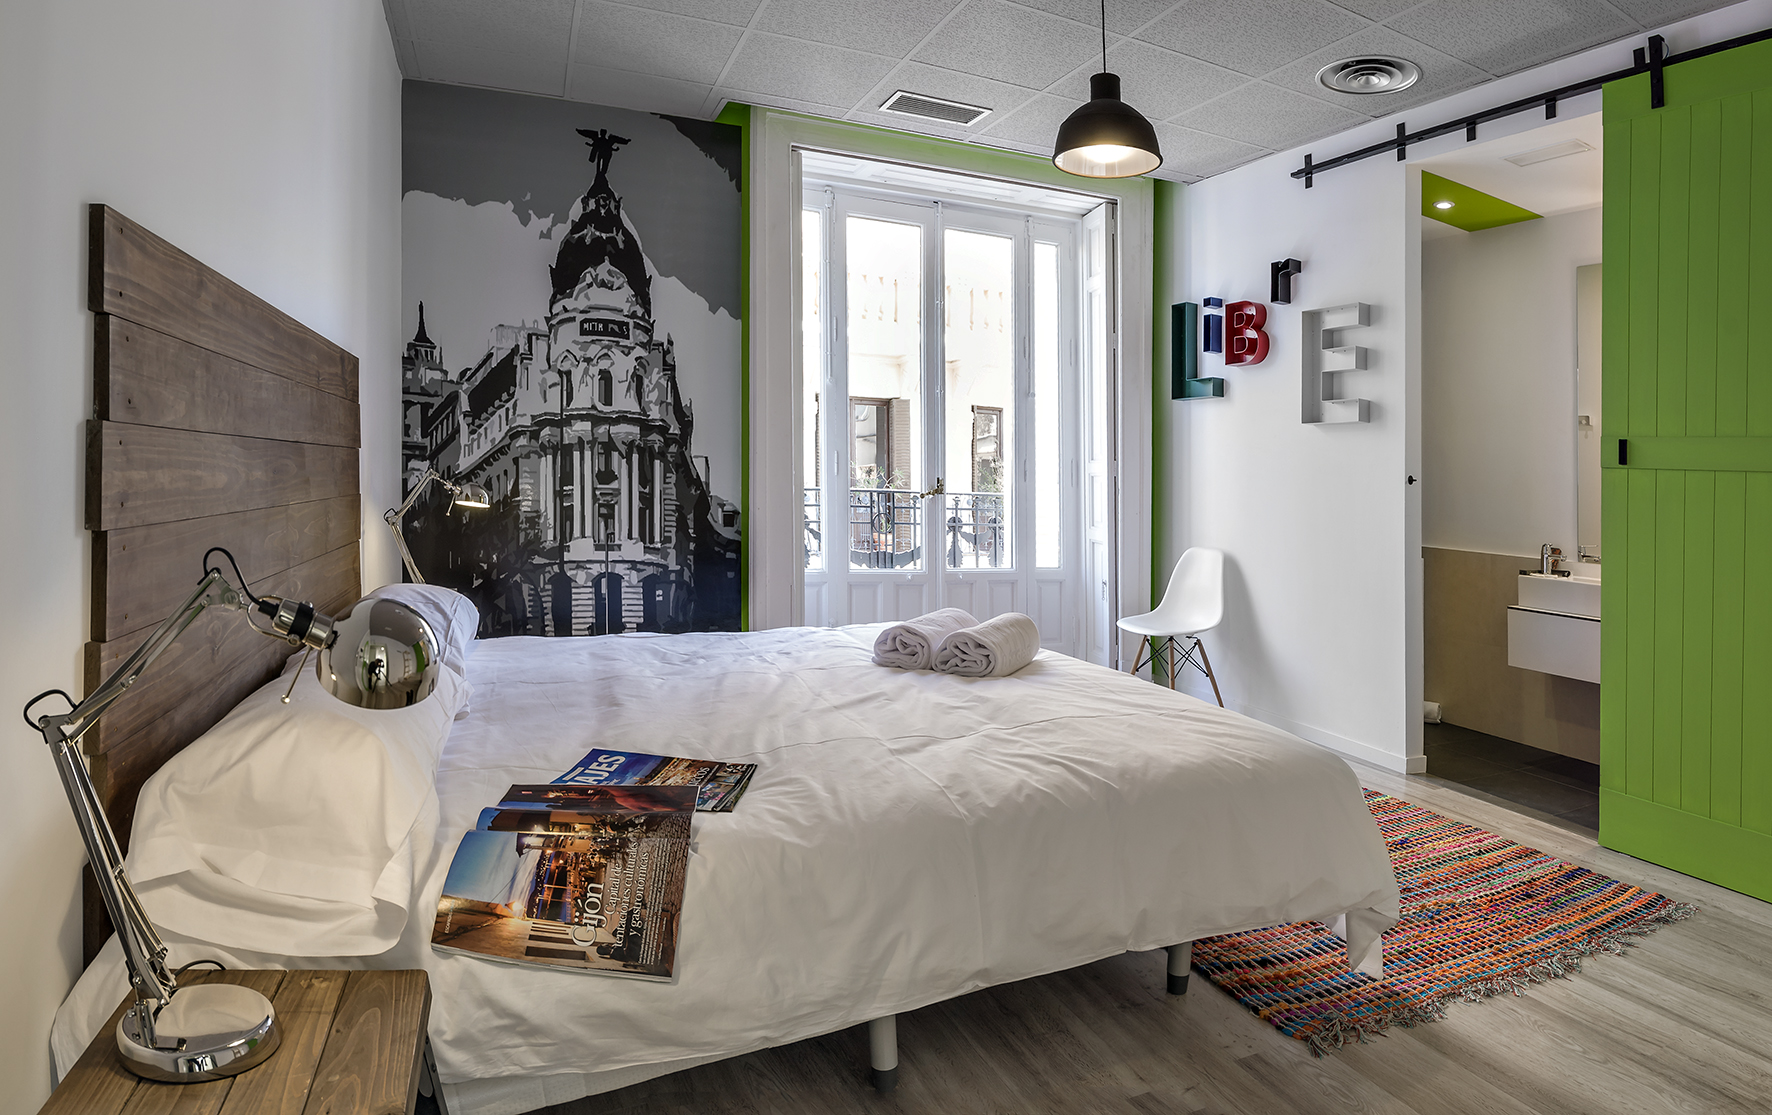 10 awesome hostels around the world - U Hostels Madrid Spain